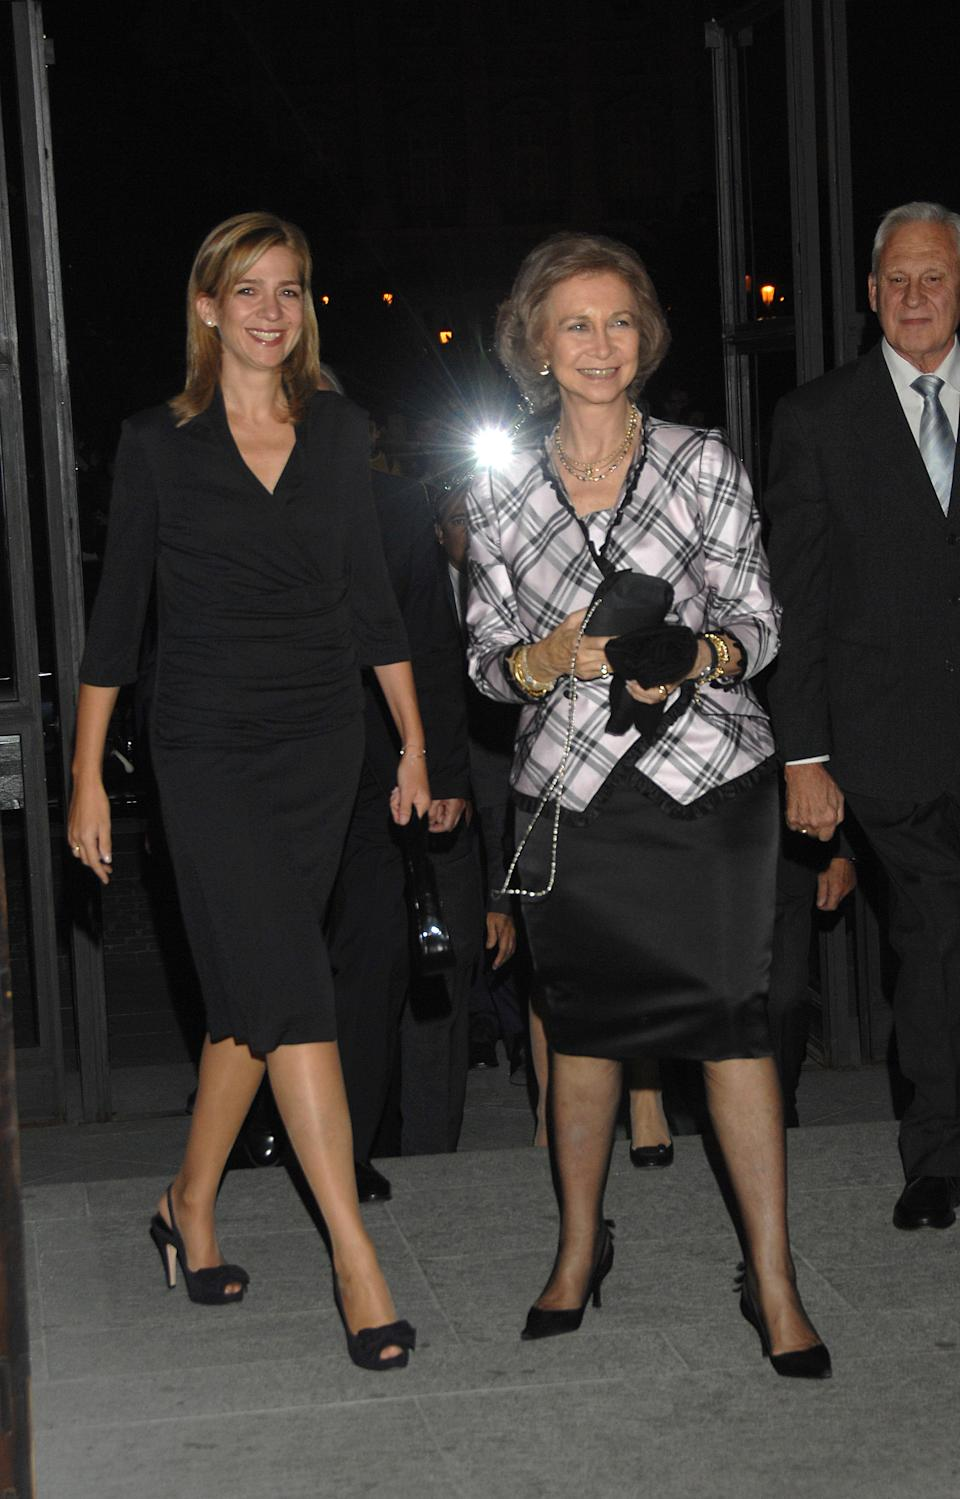 MADRID, SPAIN - OCTOBER 11:  HM Queen Sofia (R) and HRH Infanta Cristina (L) attend Teatro Real restoration 10th anniversary gala on October 11, 2007 in Madrid, Spain.  (Photo by Lalo Yasky/WireImage)